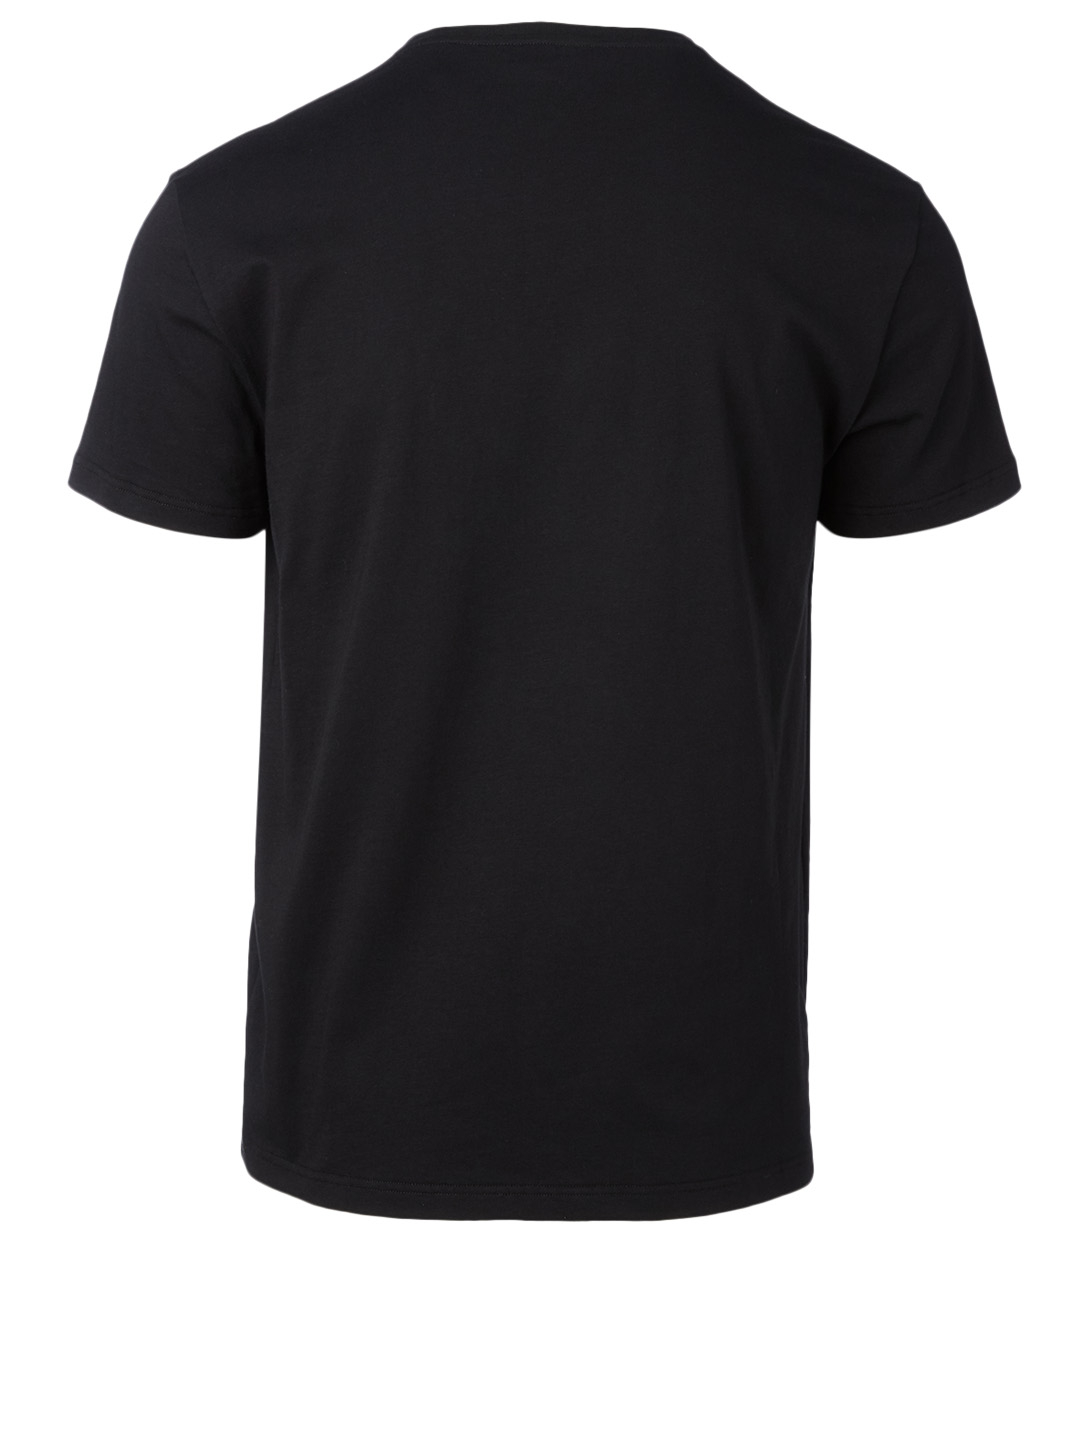 ALEXANDER MCQUEEN Landscape Cotton T-Shirt Men's Black